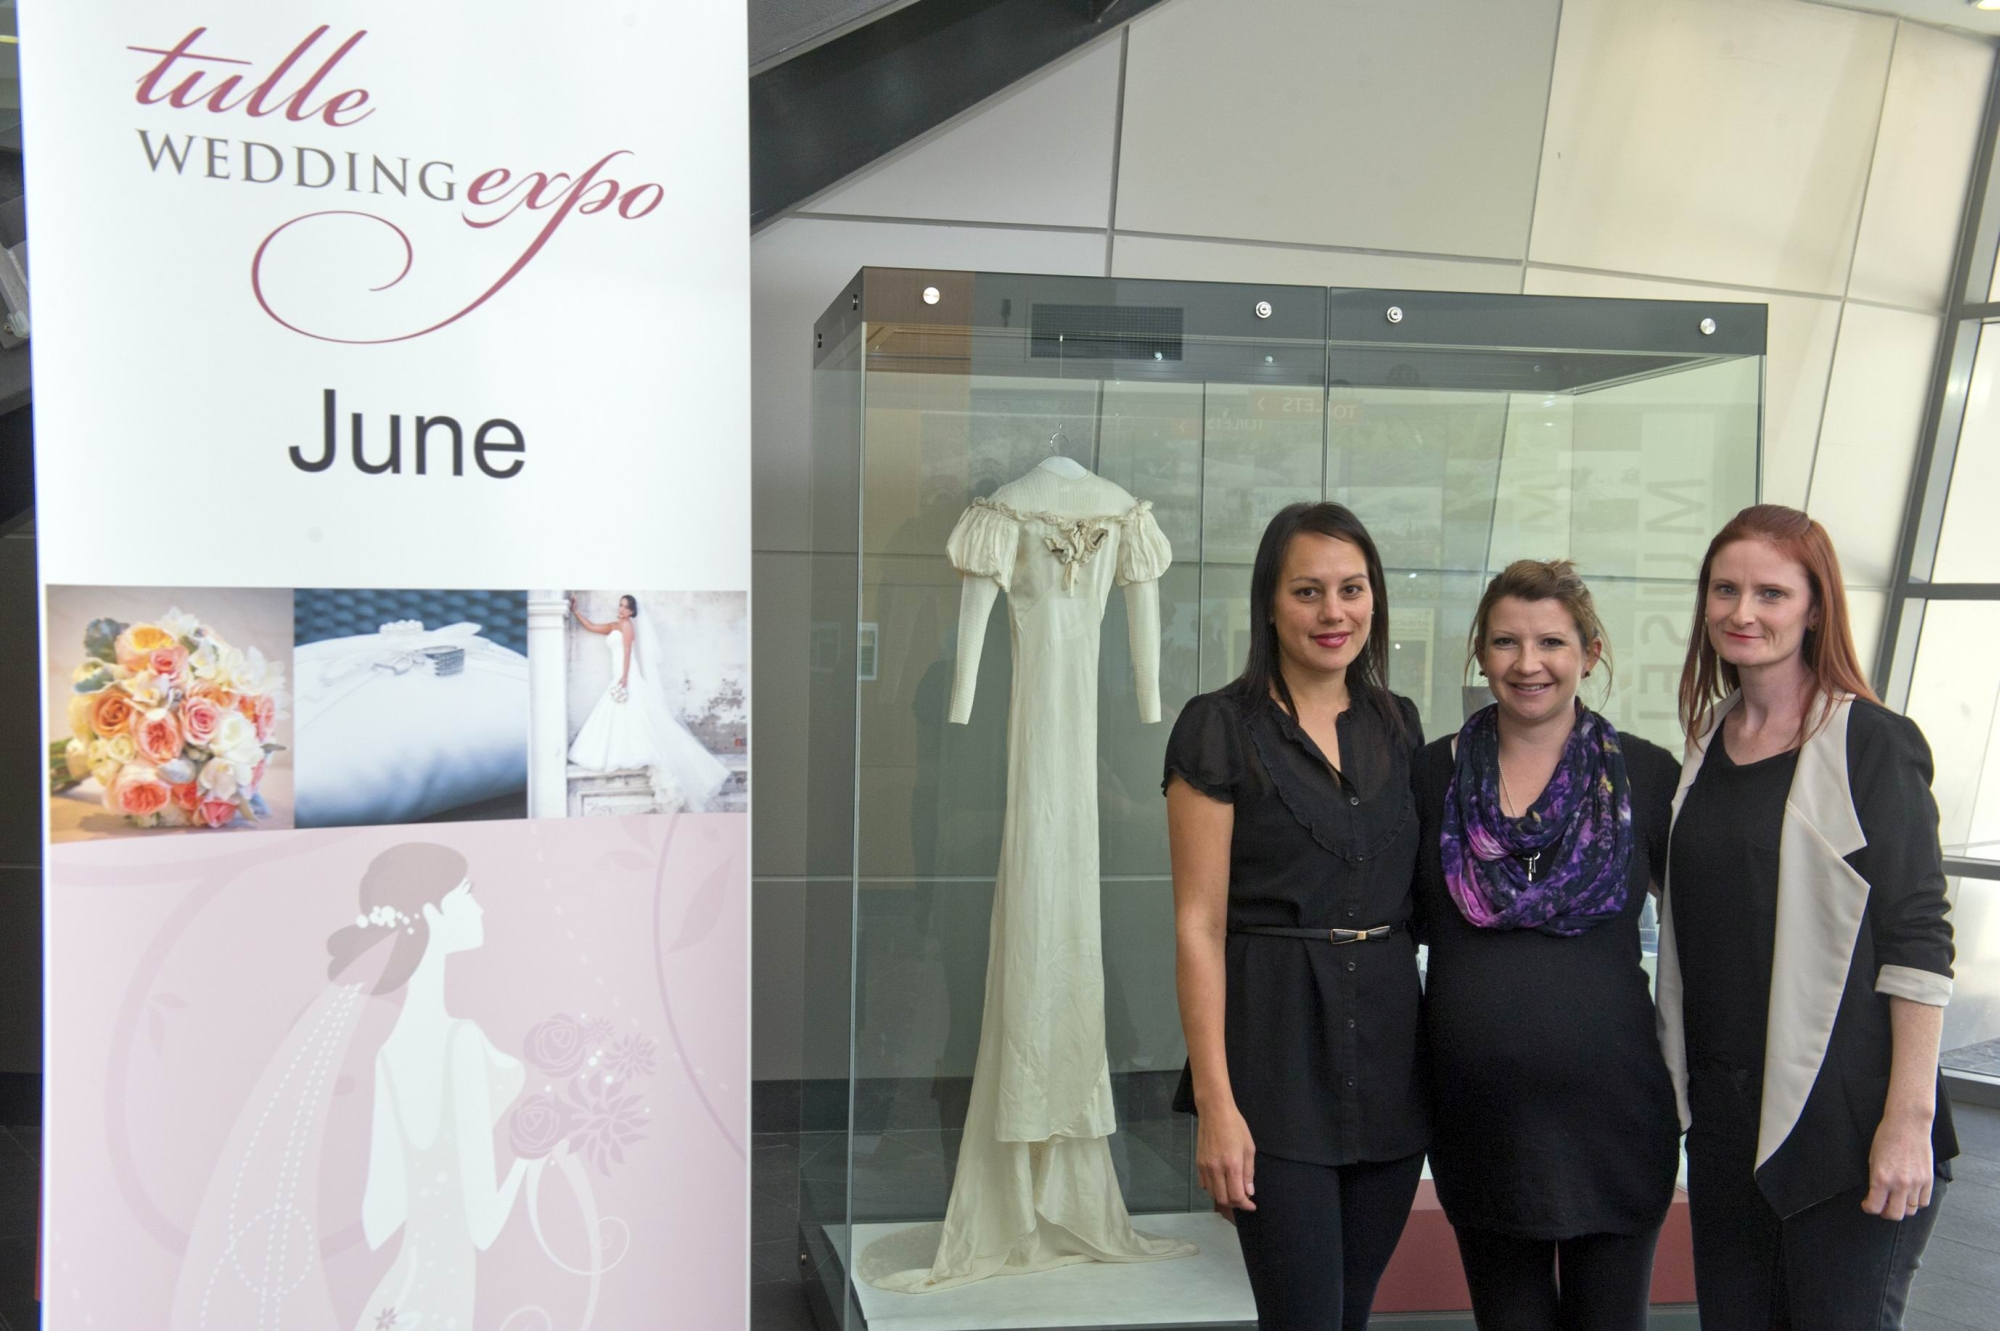 From Left: Sharee Feist, Sophie Cordeiro, Gillian Dawson are organising the Tulle Wedding Expo